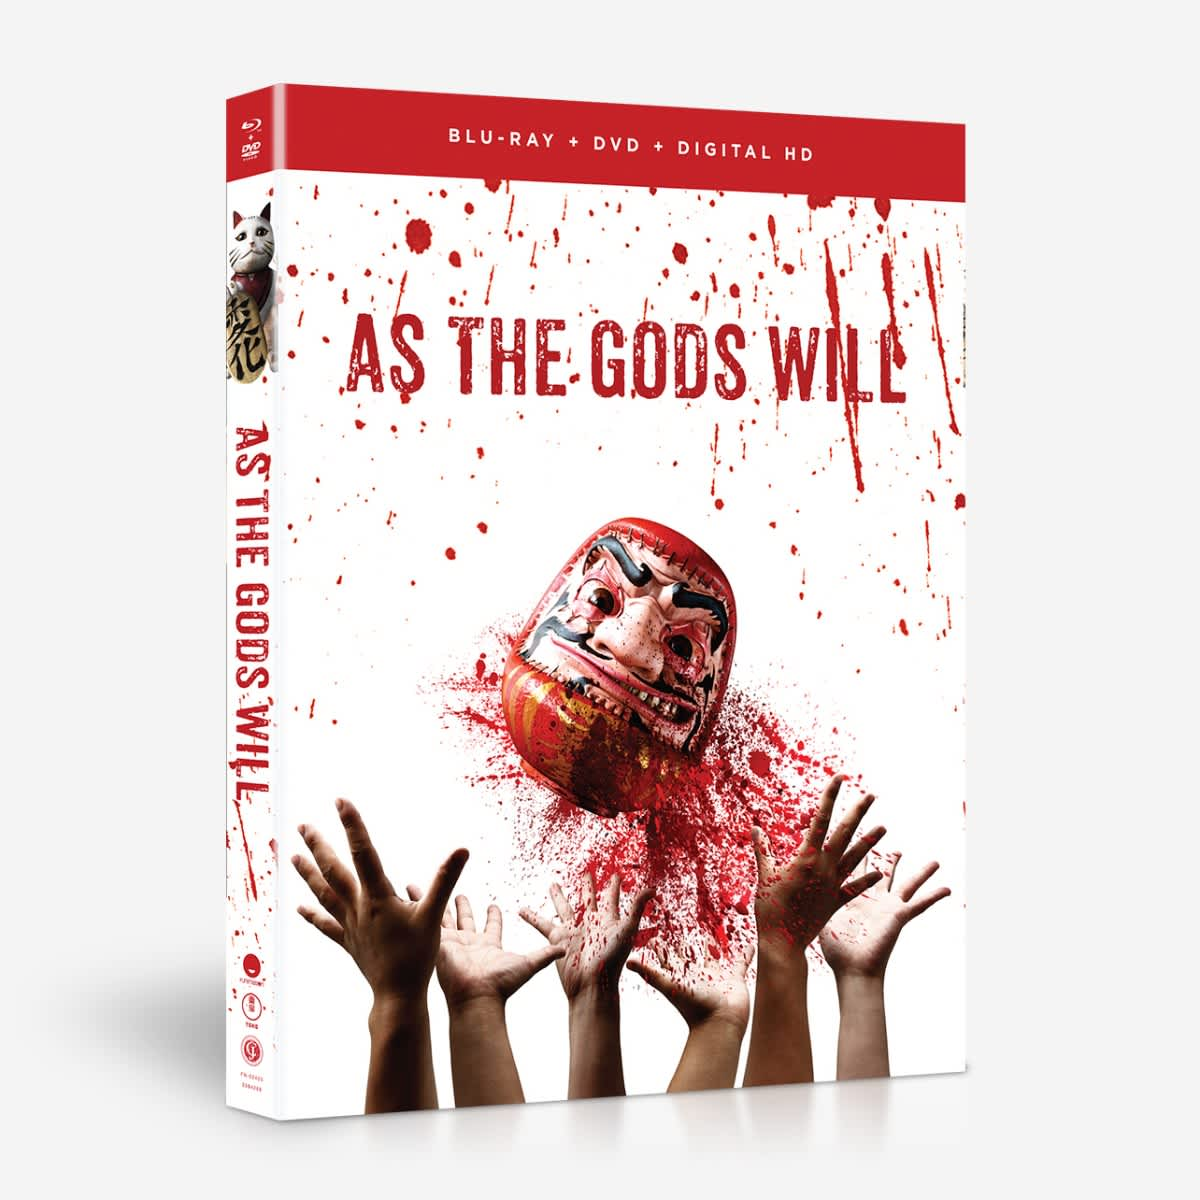 As the Gods Will Blu-ray/DVD